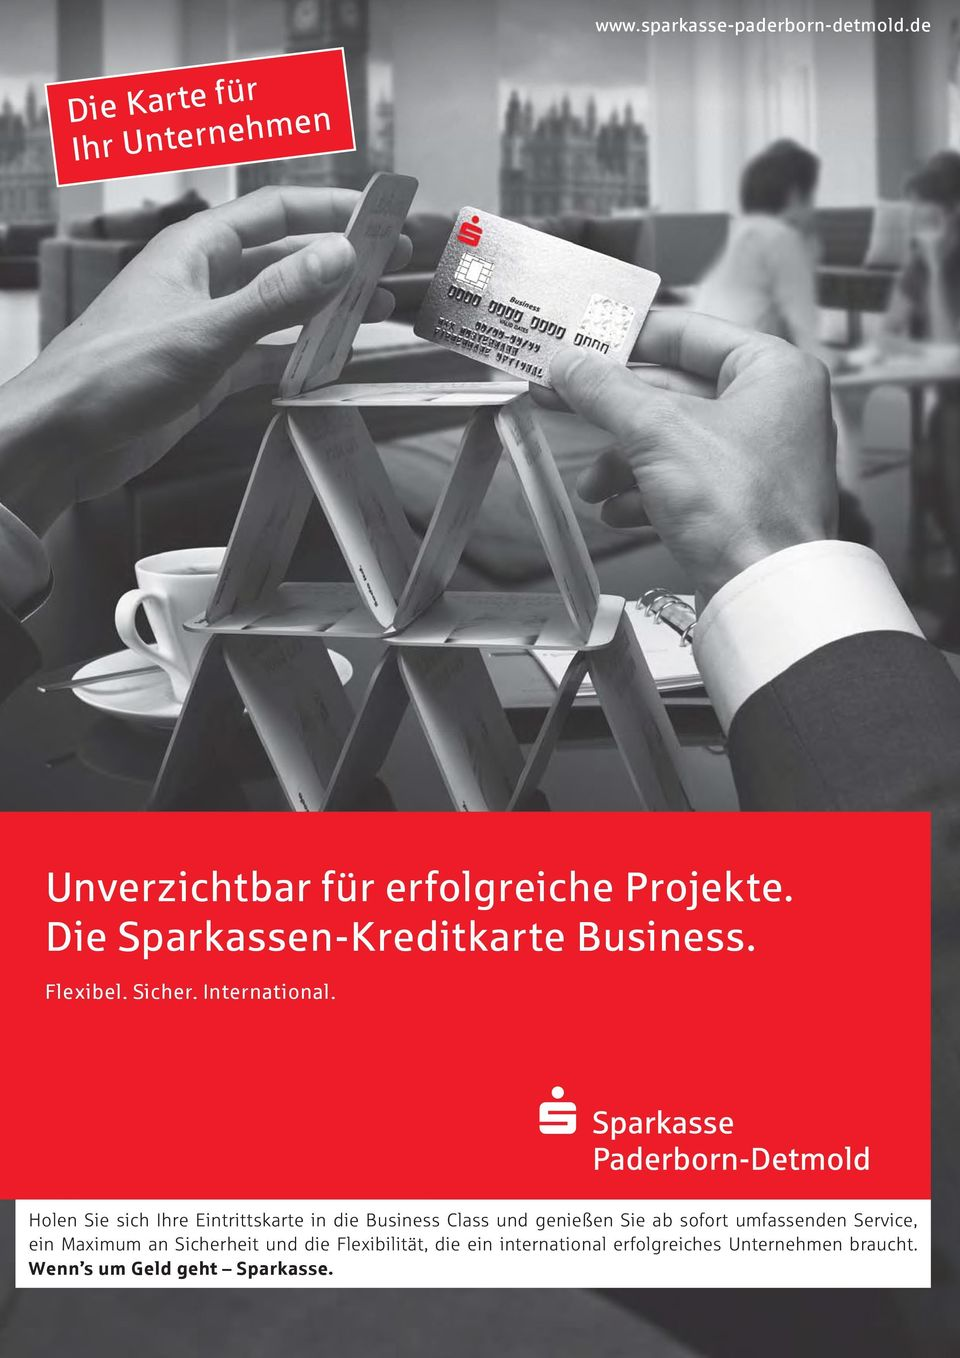 Die Sparkassen-Kreditkarte Business. Flexibel. Sicher. International.